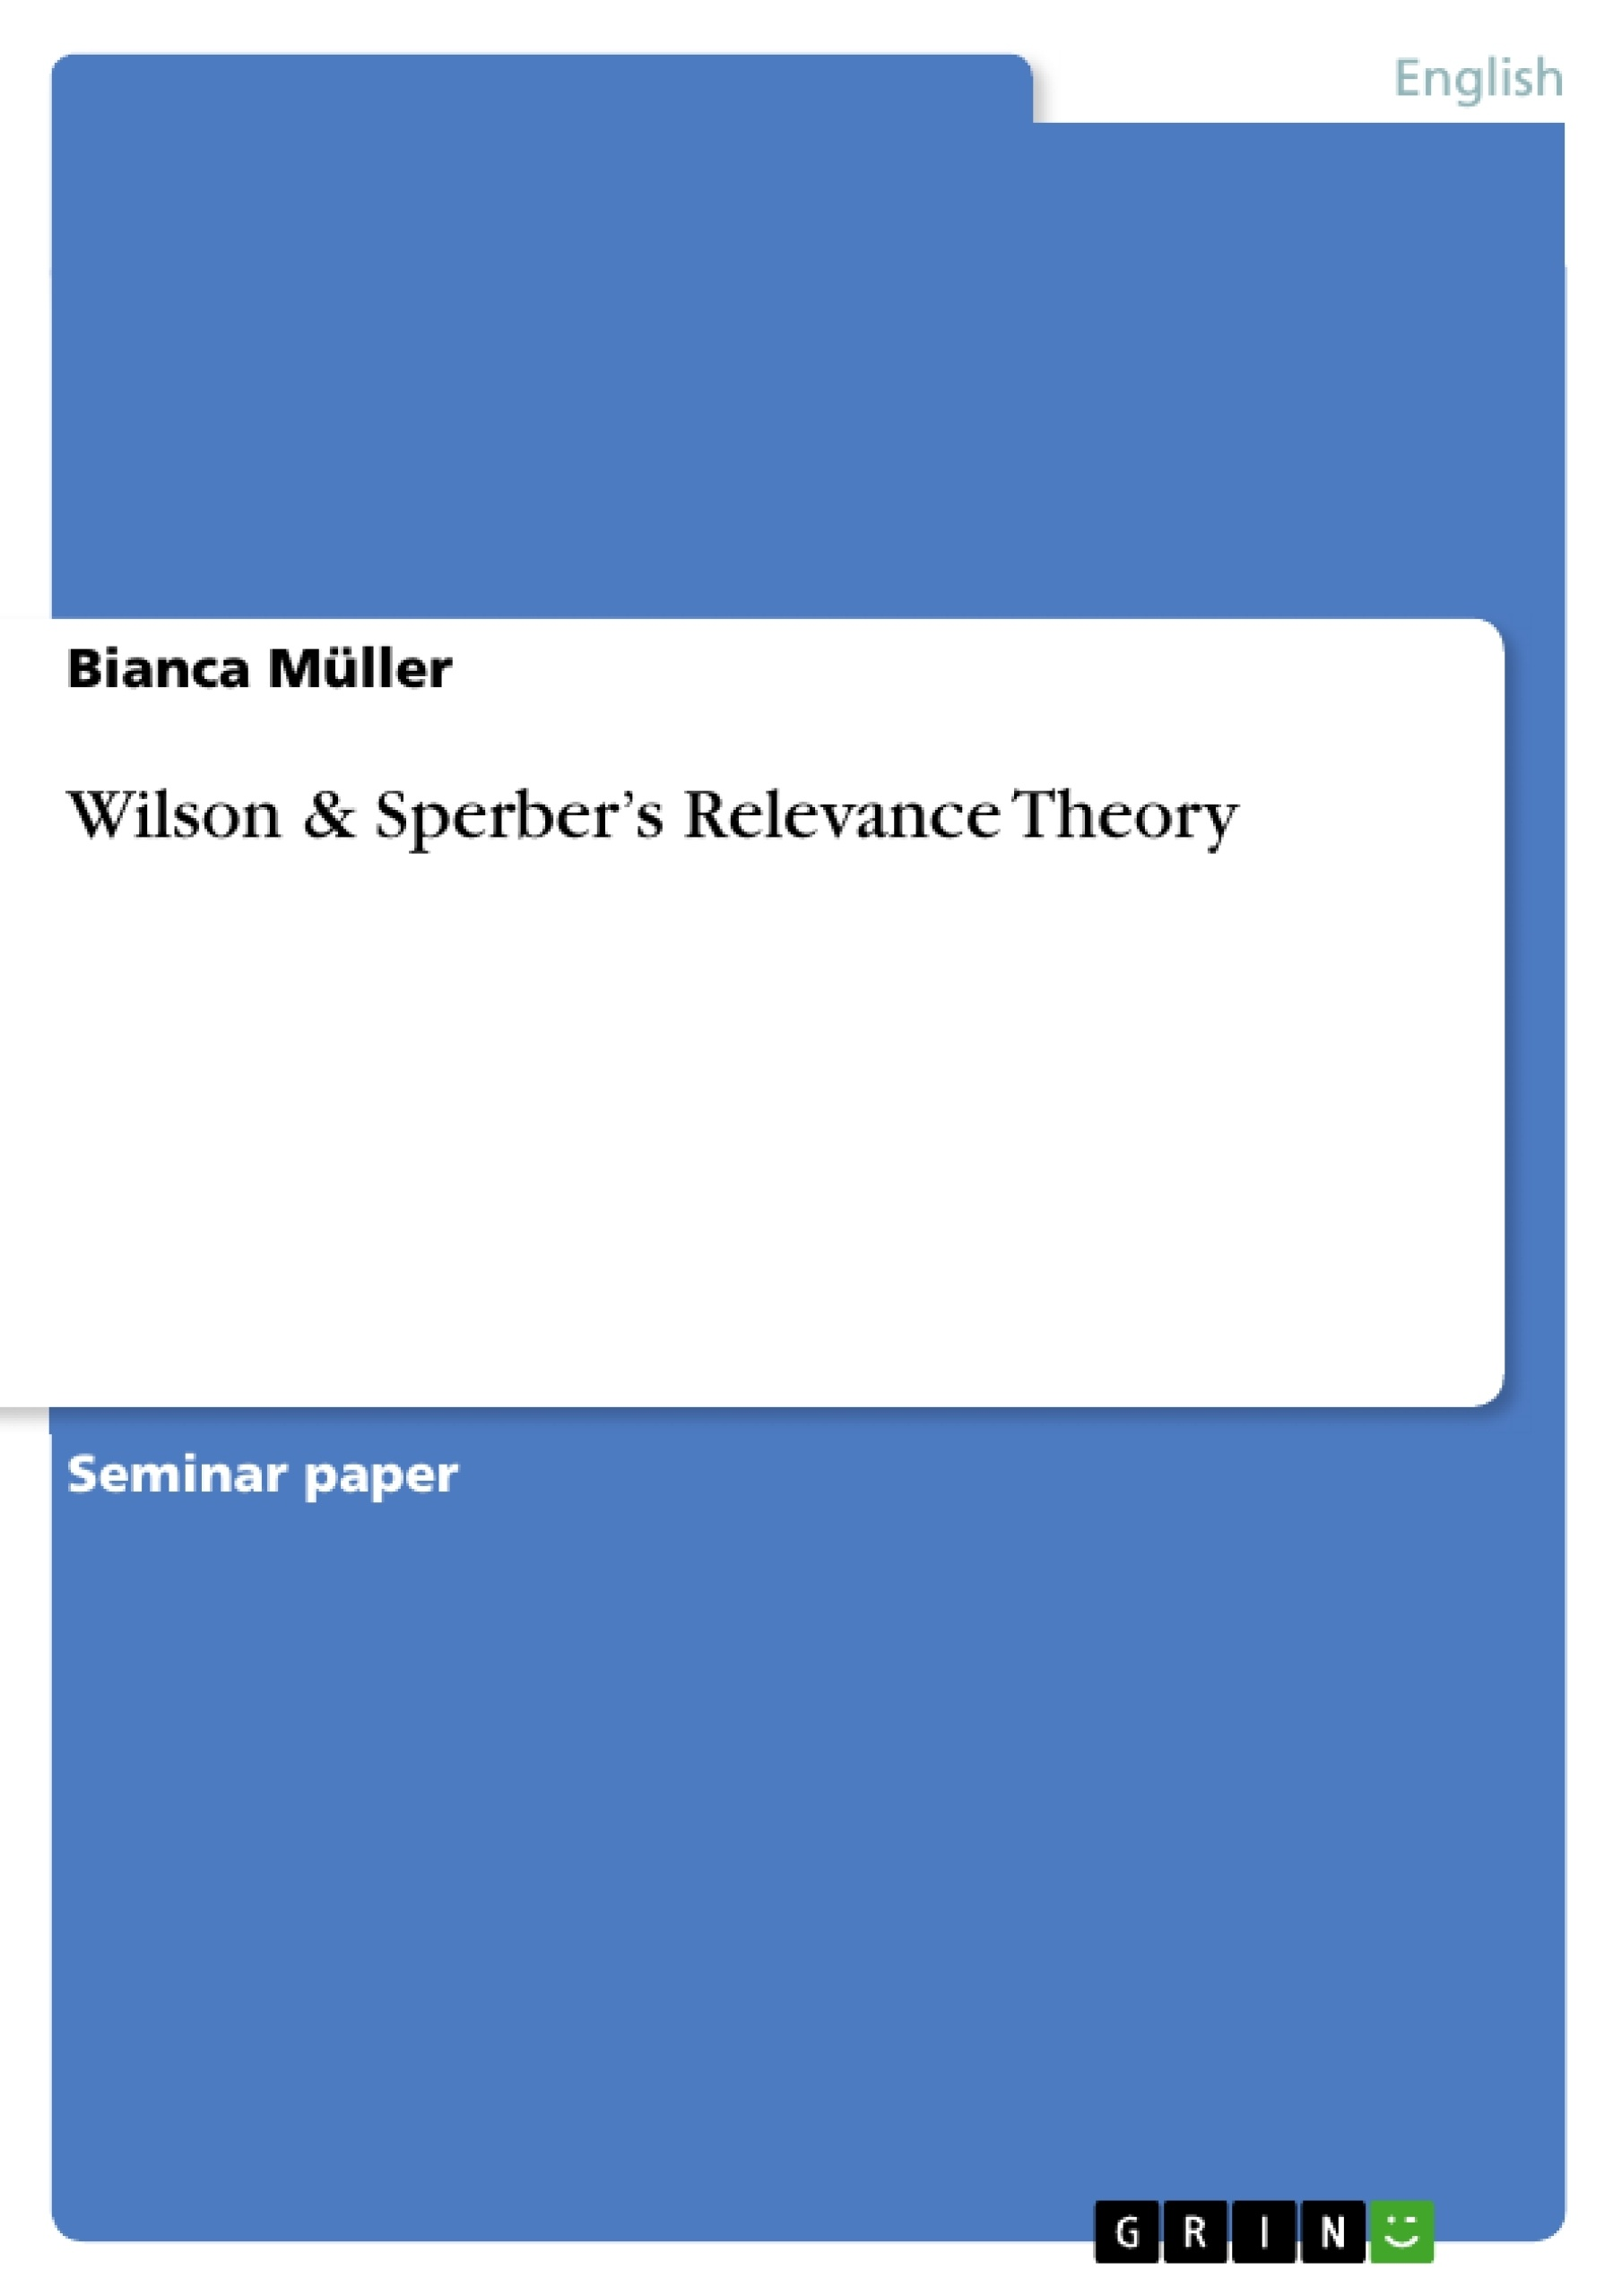 Title: Wilson & Sperber's Relevance Theory